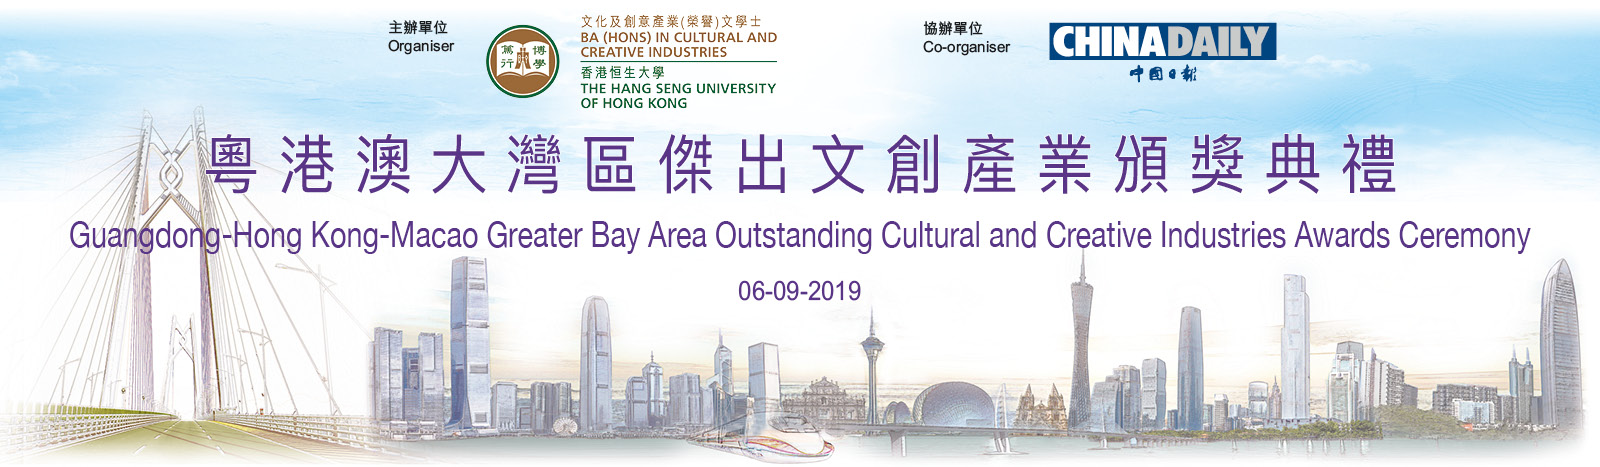 Guangdong-HK-Macau Greater Bay Area Outstanding Cultural and Creative Industries Awards Ceremony